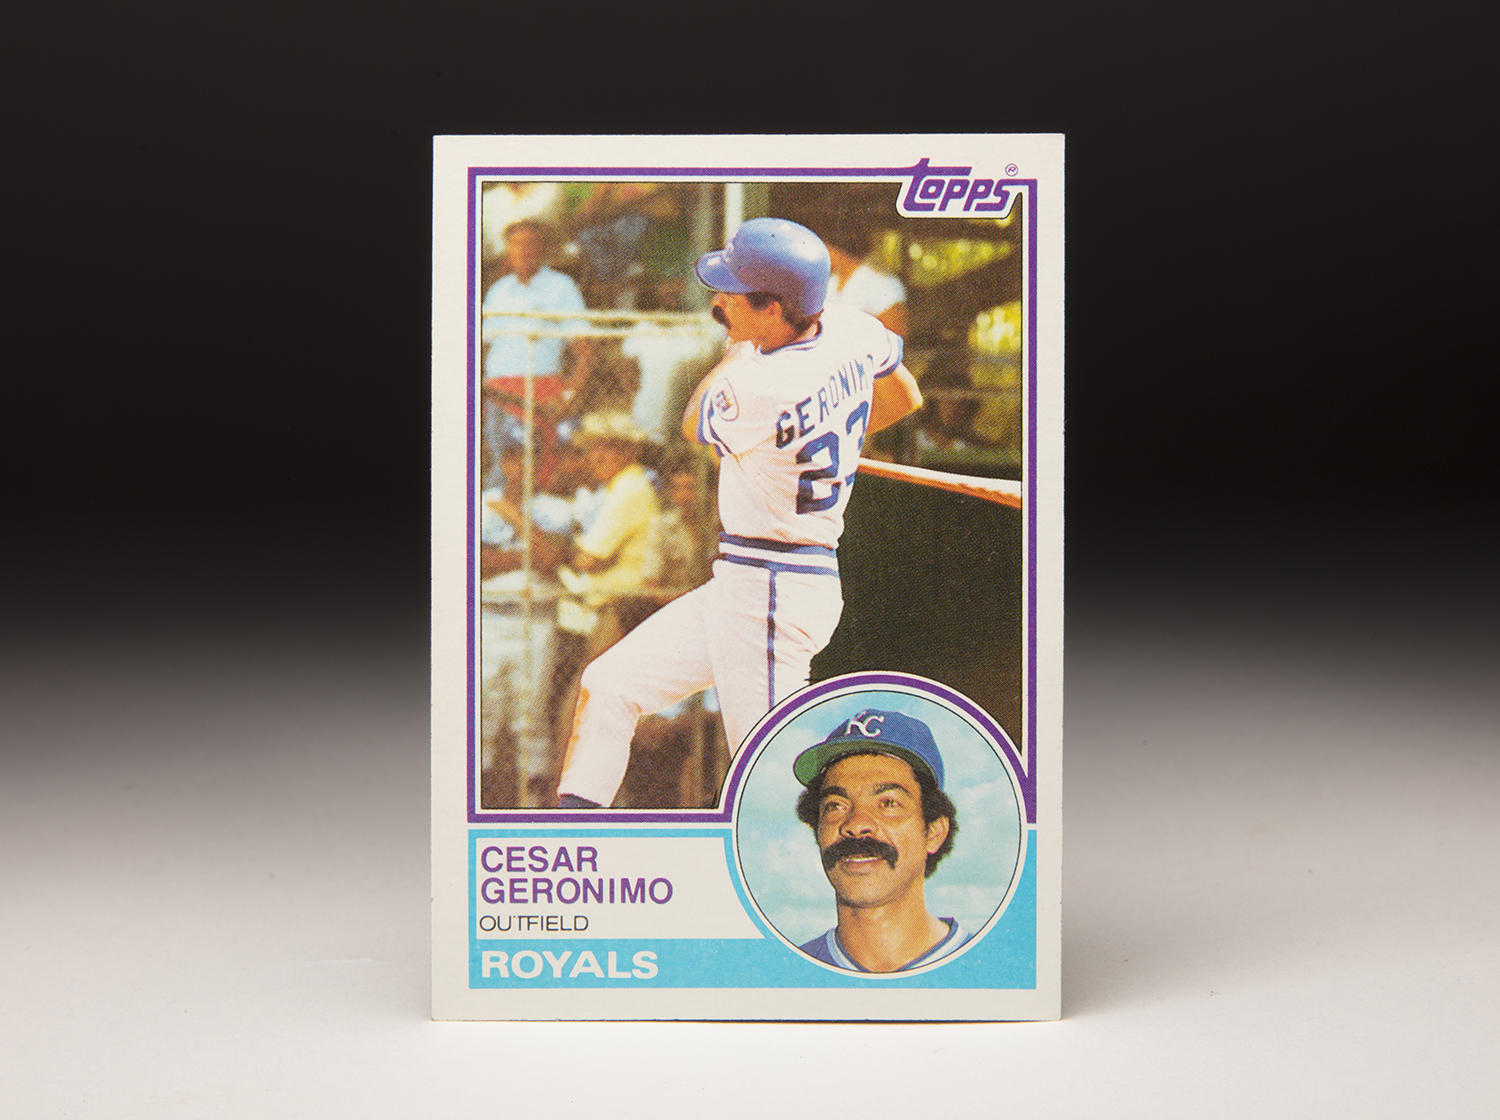 César Gerónimo's mustache is fully evident in the small portrait shot contained on his 1983 Topps card, pictured above. (Milo Stewart Jr./National Baseball Hall of Fame and Museum)